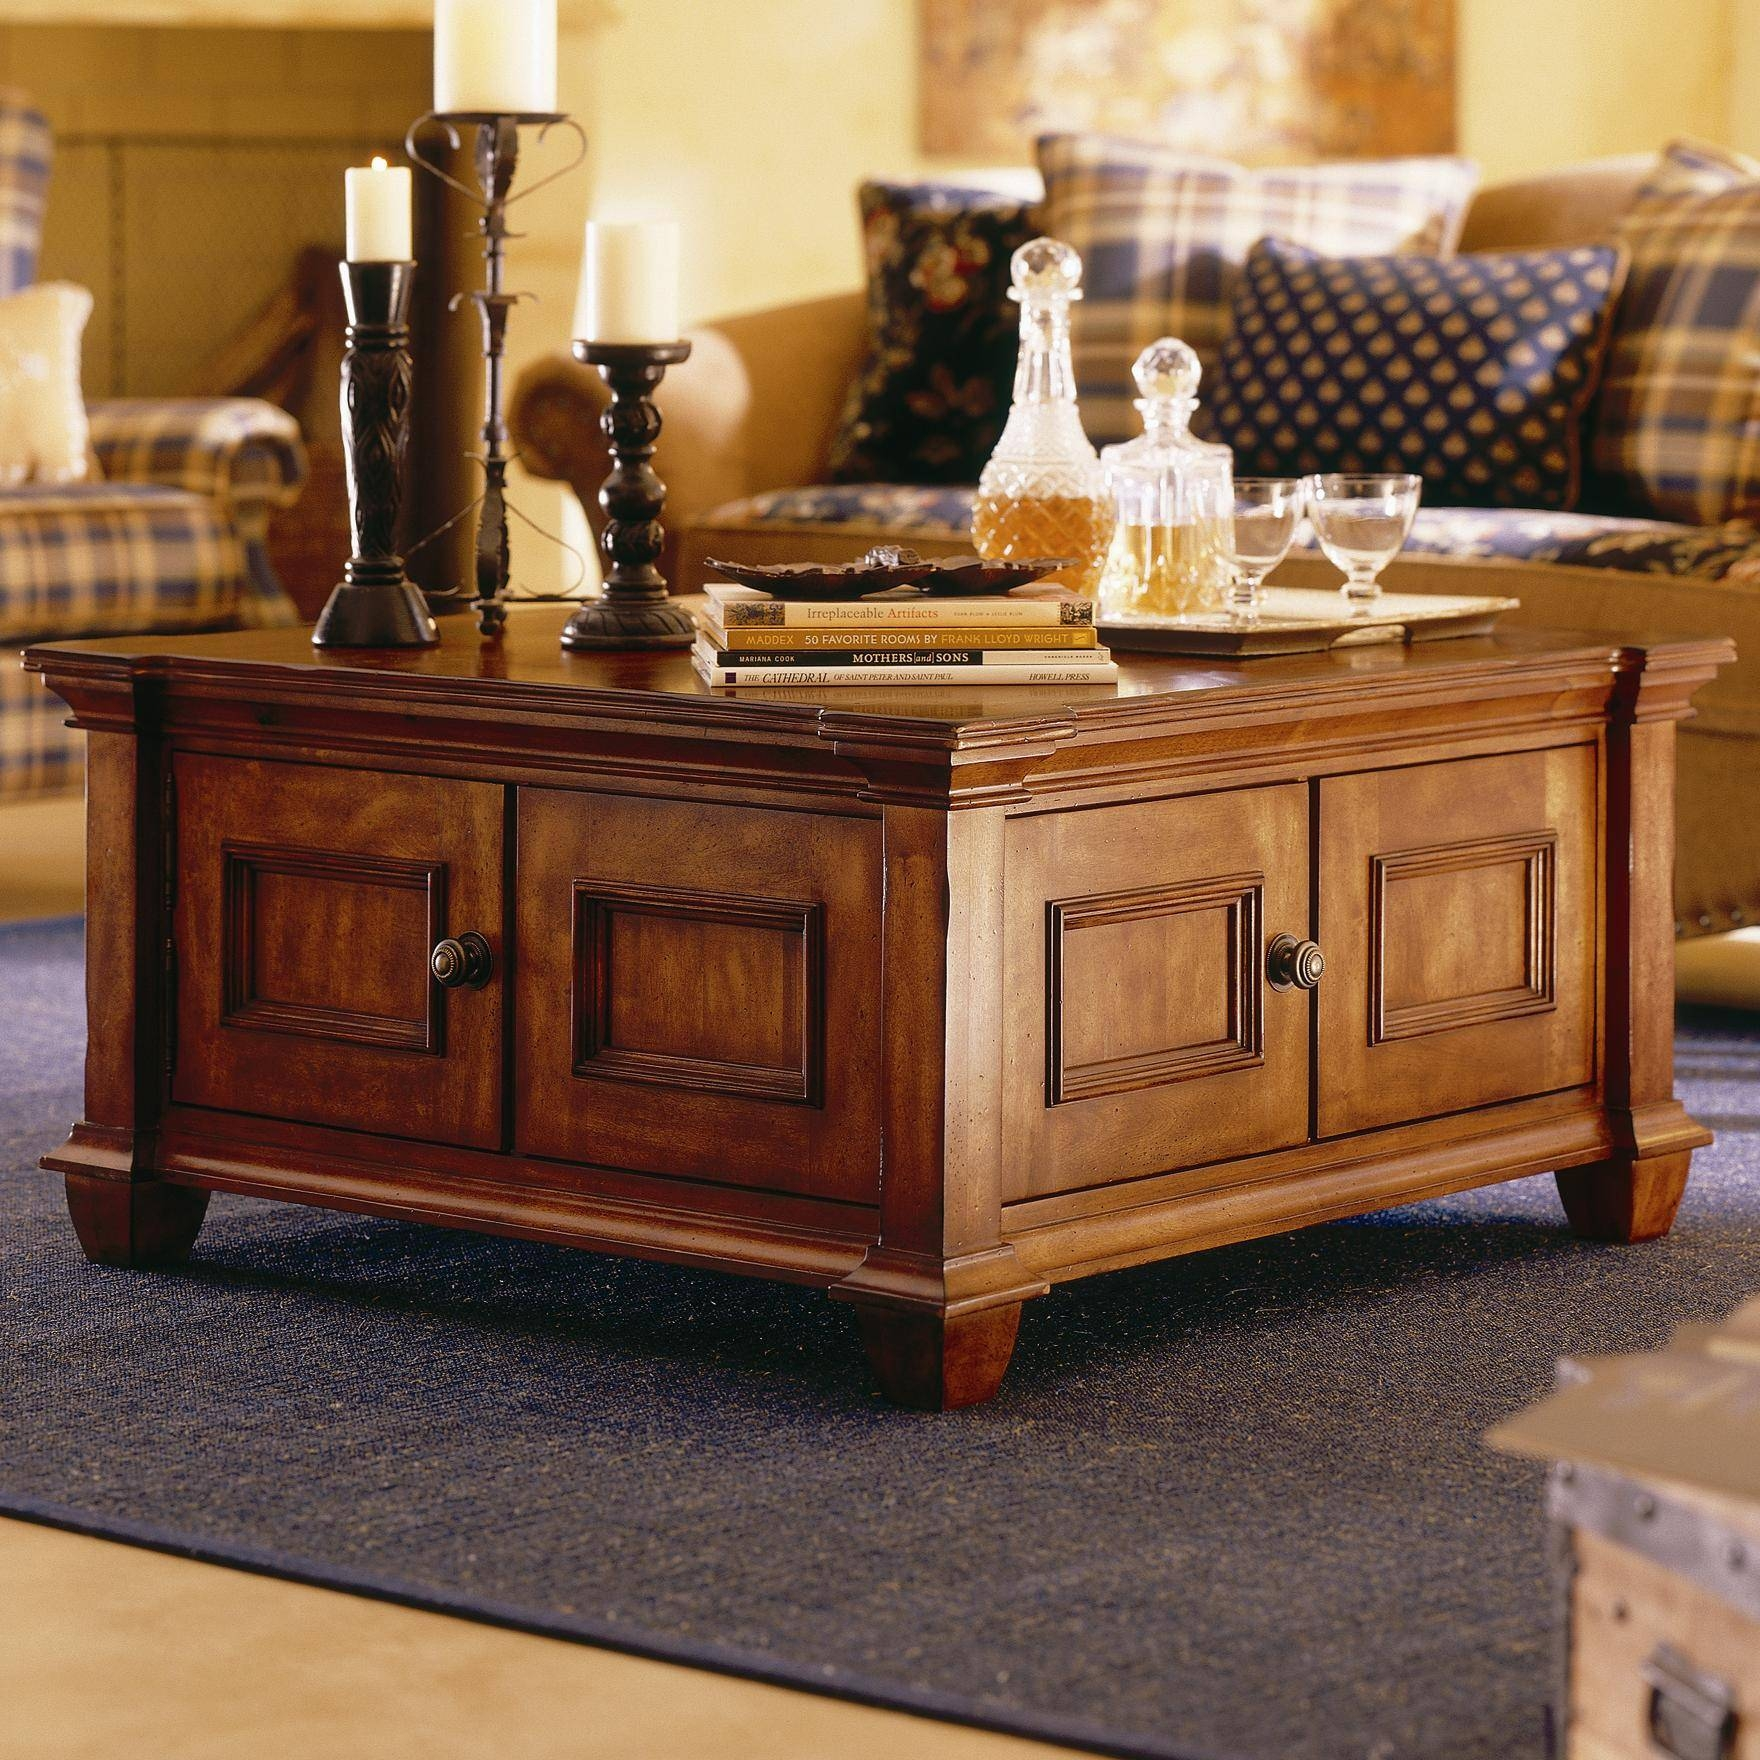 Kanson Square Coffee Table With Storage Cubes | Coffee Tables For Square Coffee Tables (Photo 19 of 30)